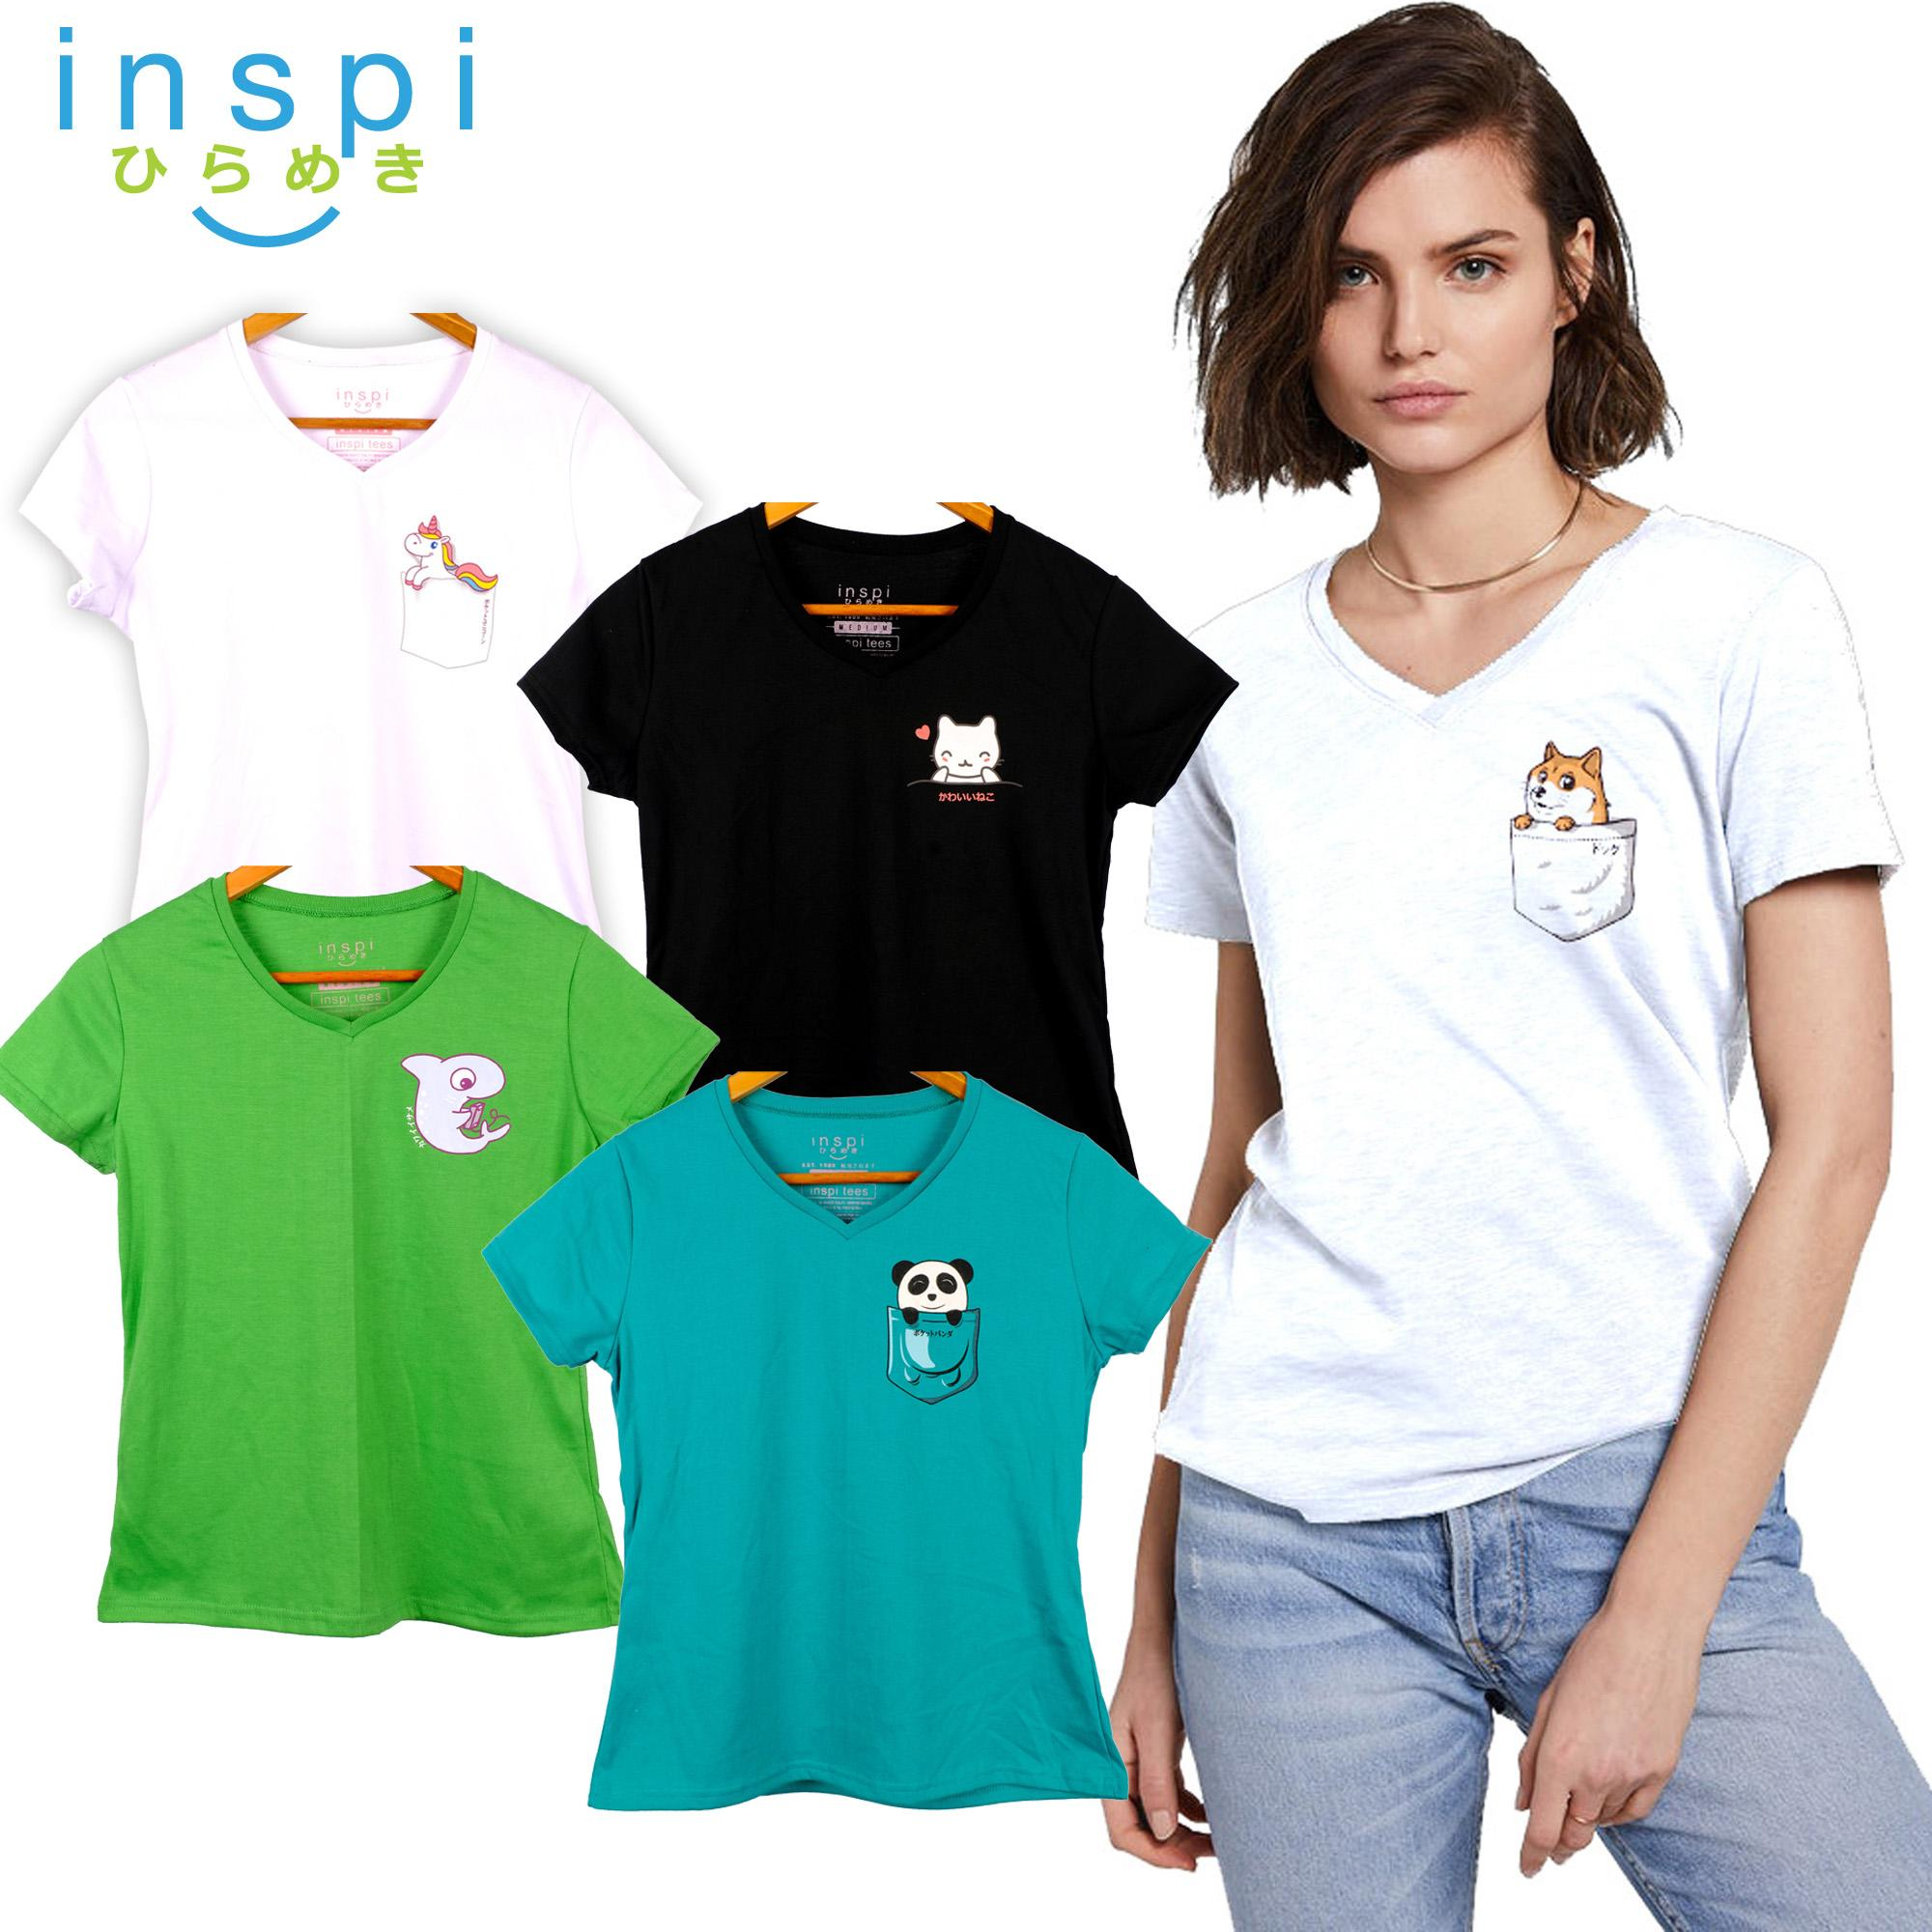 60c11839b INSPI Tees Ladies Semi Fit Pocket Friends Collection tshirt printed graphic tee  t shirt shirts tshirts